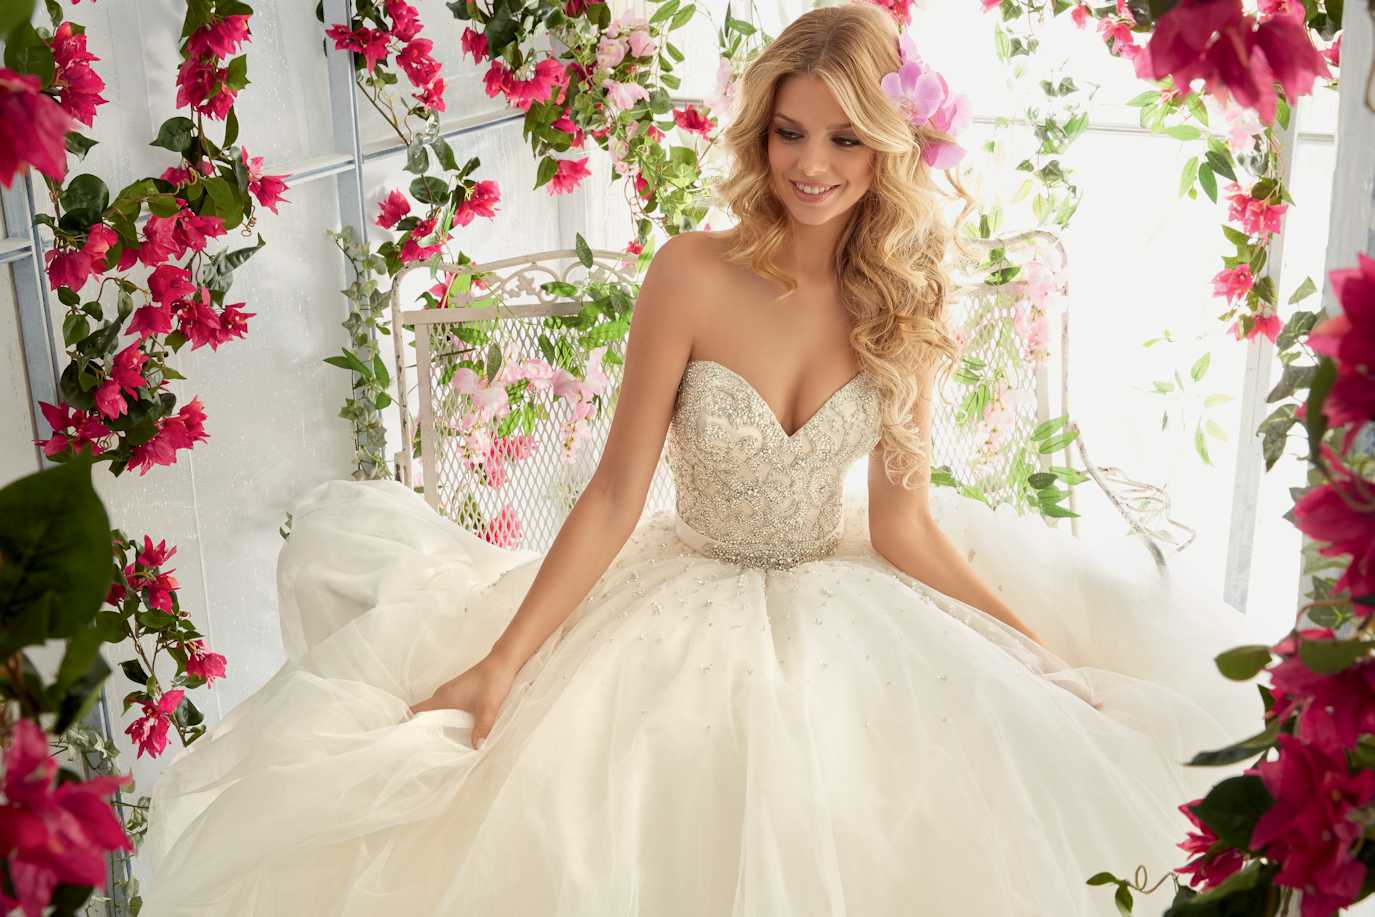 Wedding Dresses & Gowns | Bridal Shops